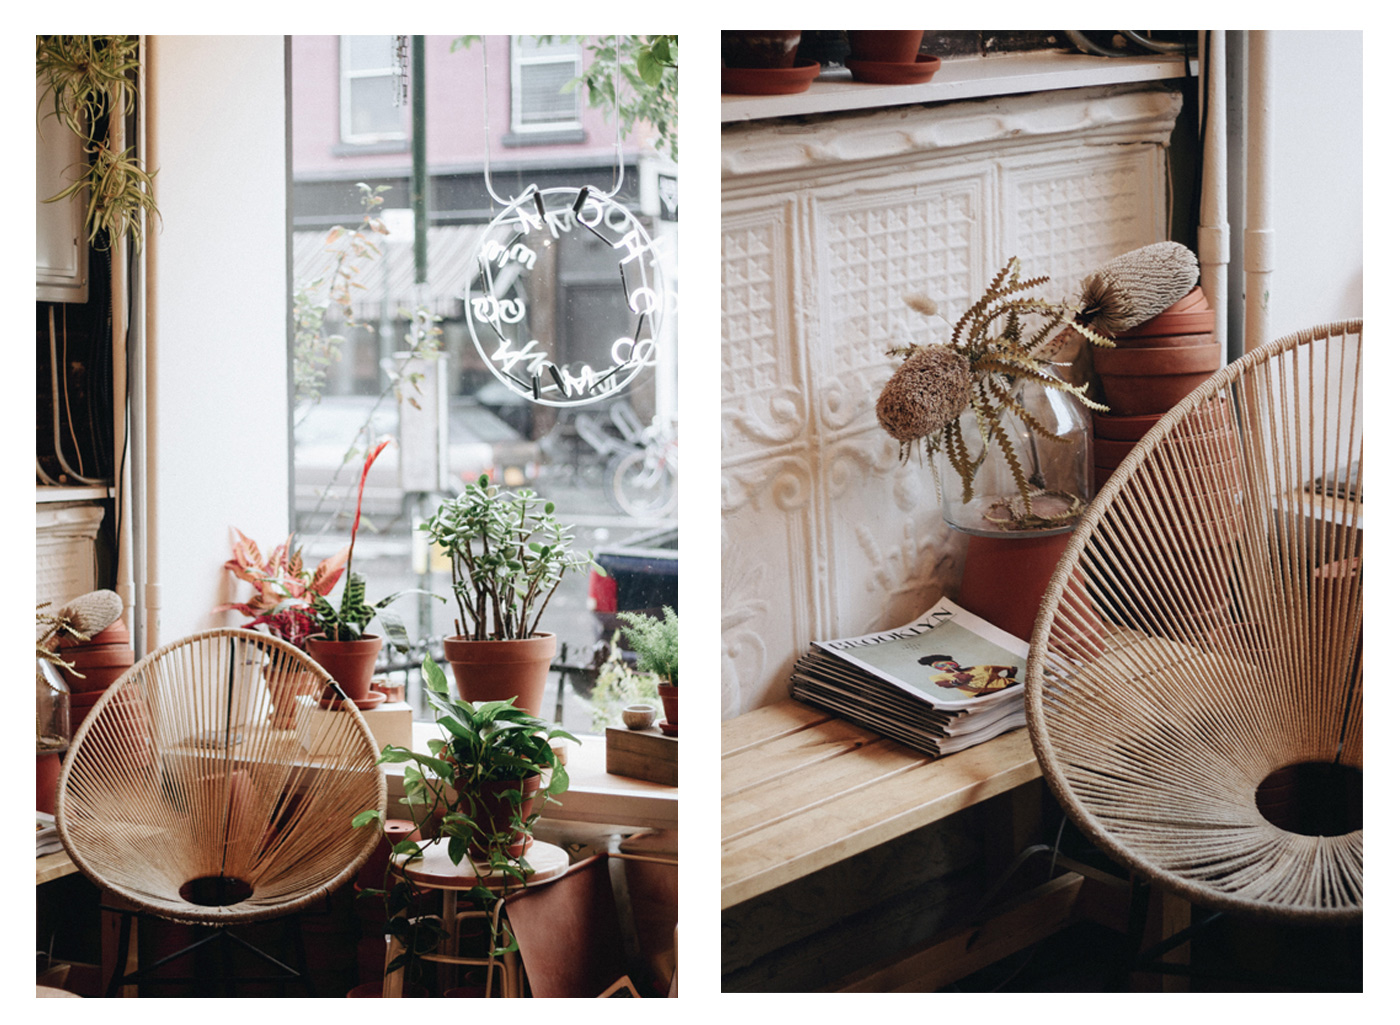 Small boutique in brooklyn new york city called home coming coffee and ceramics